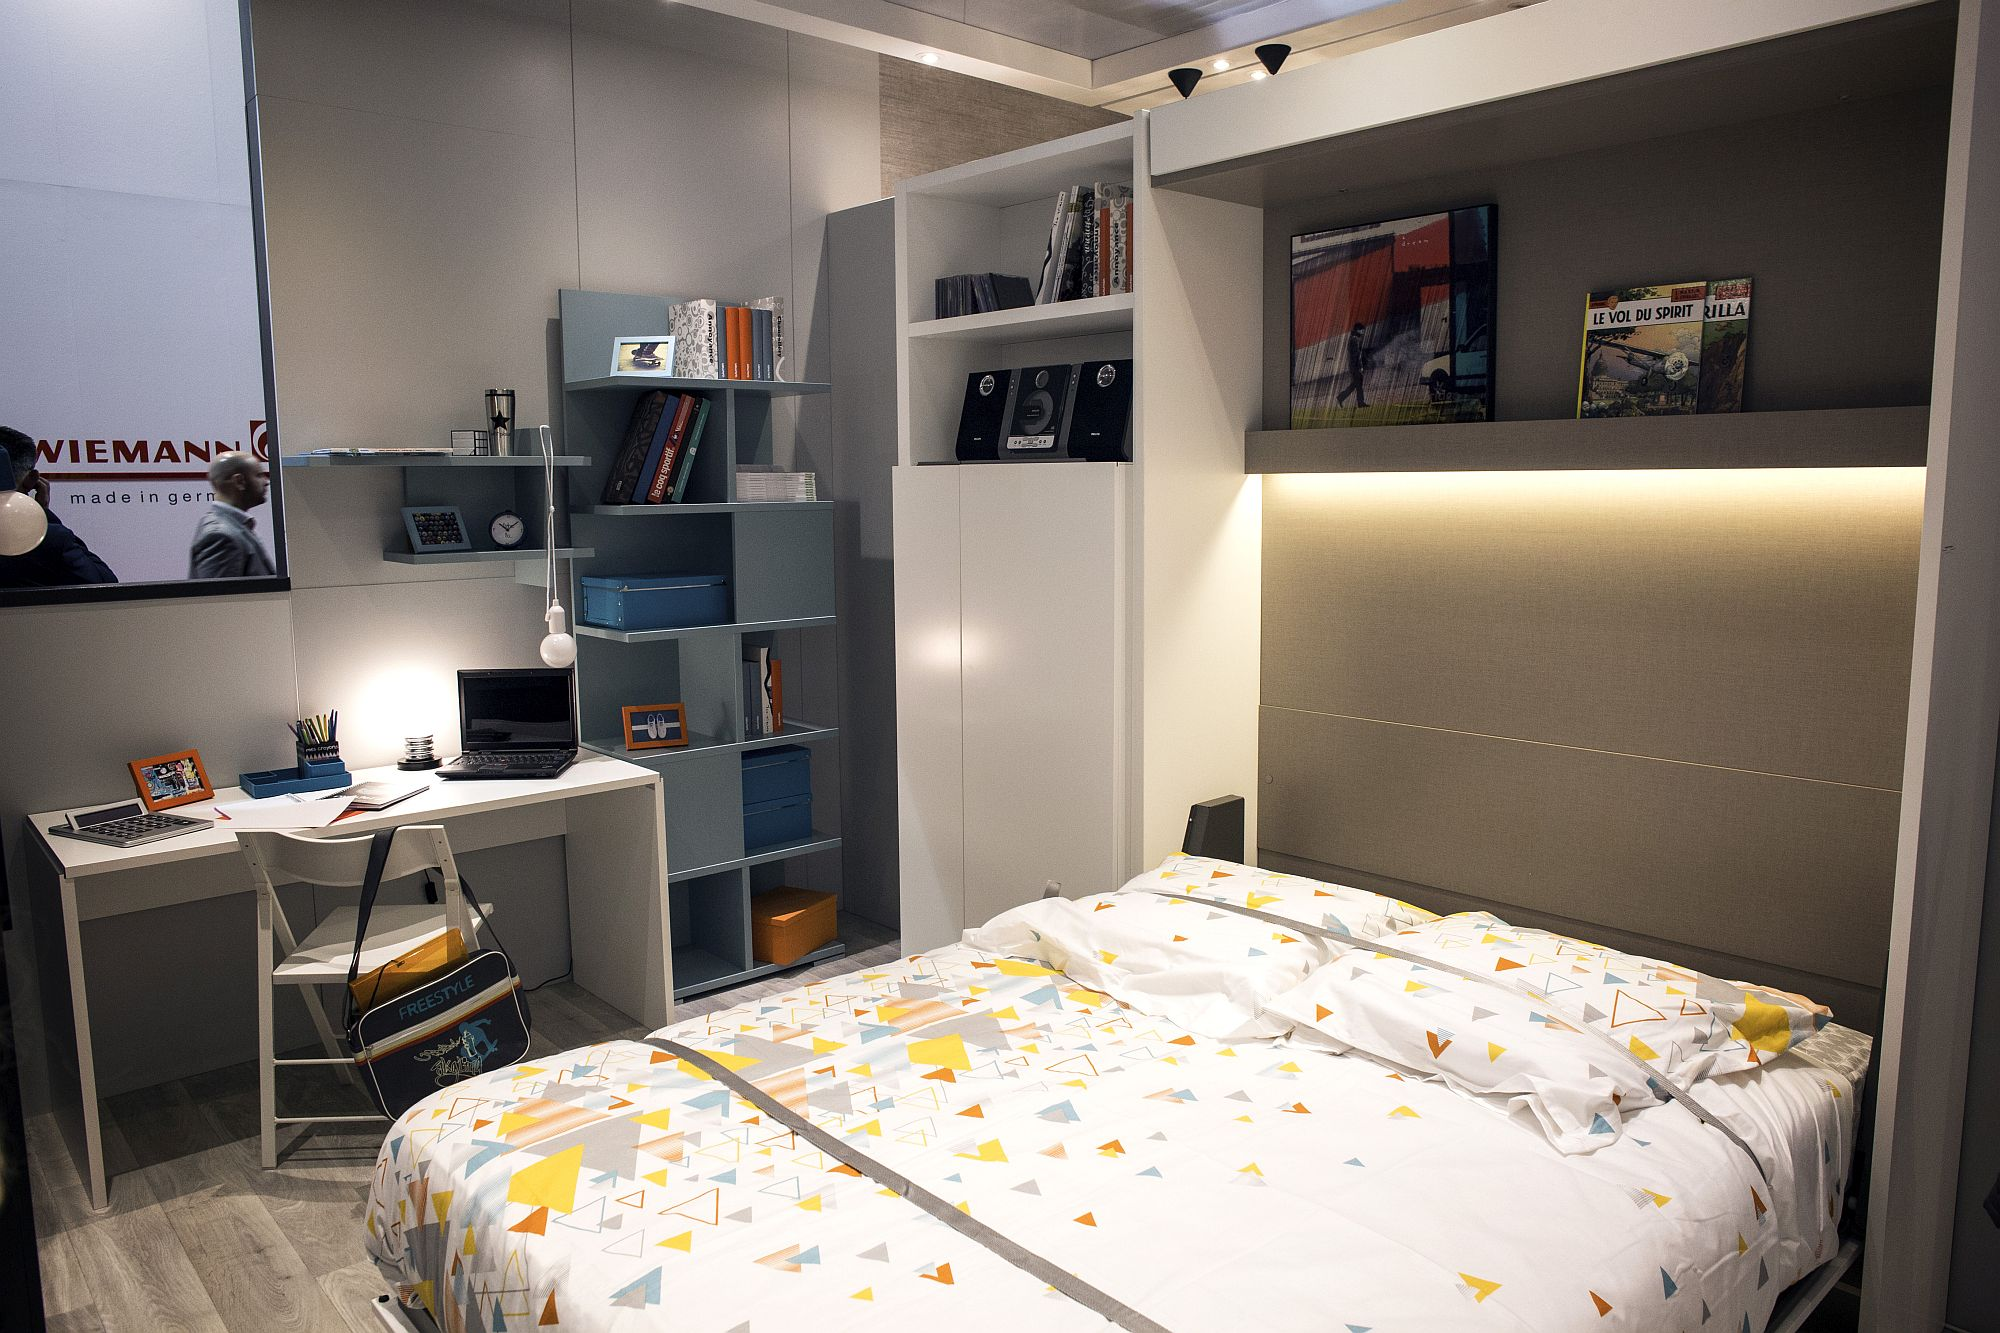 Open shelves and closed cabinets in the bedroom combined with smart lighting